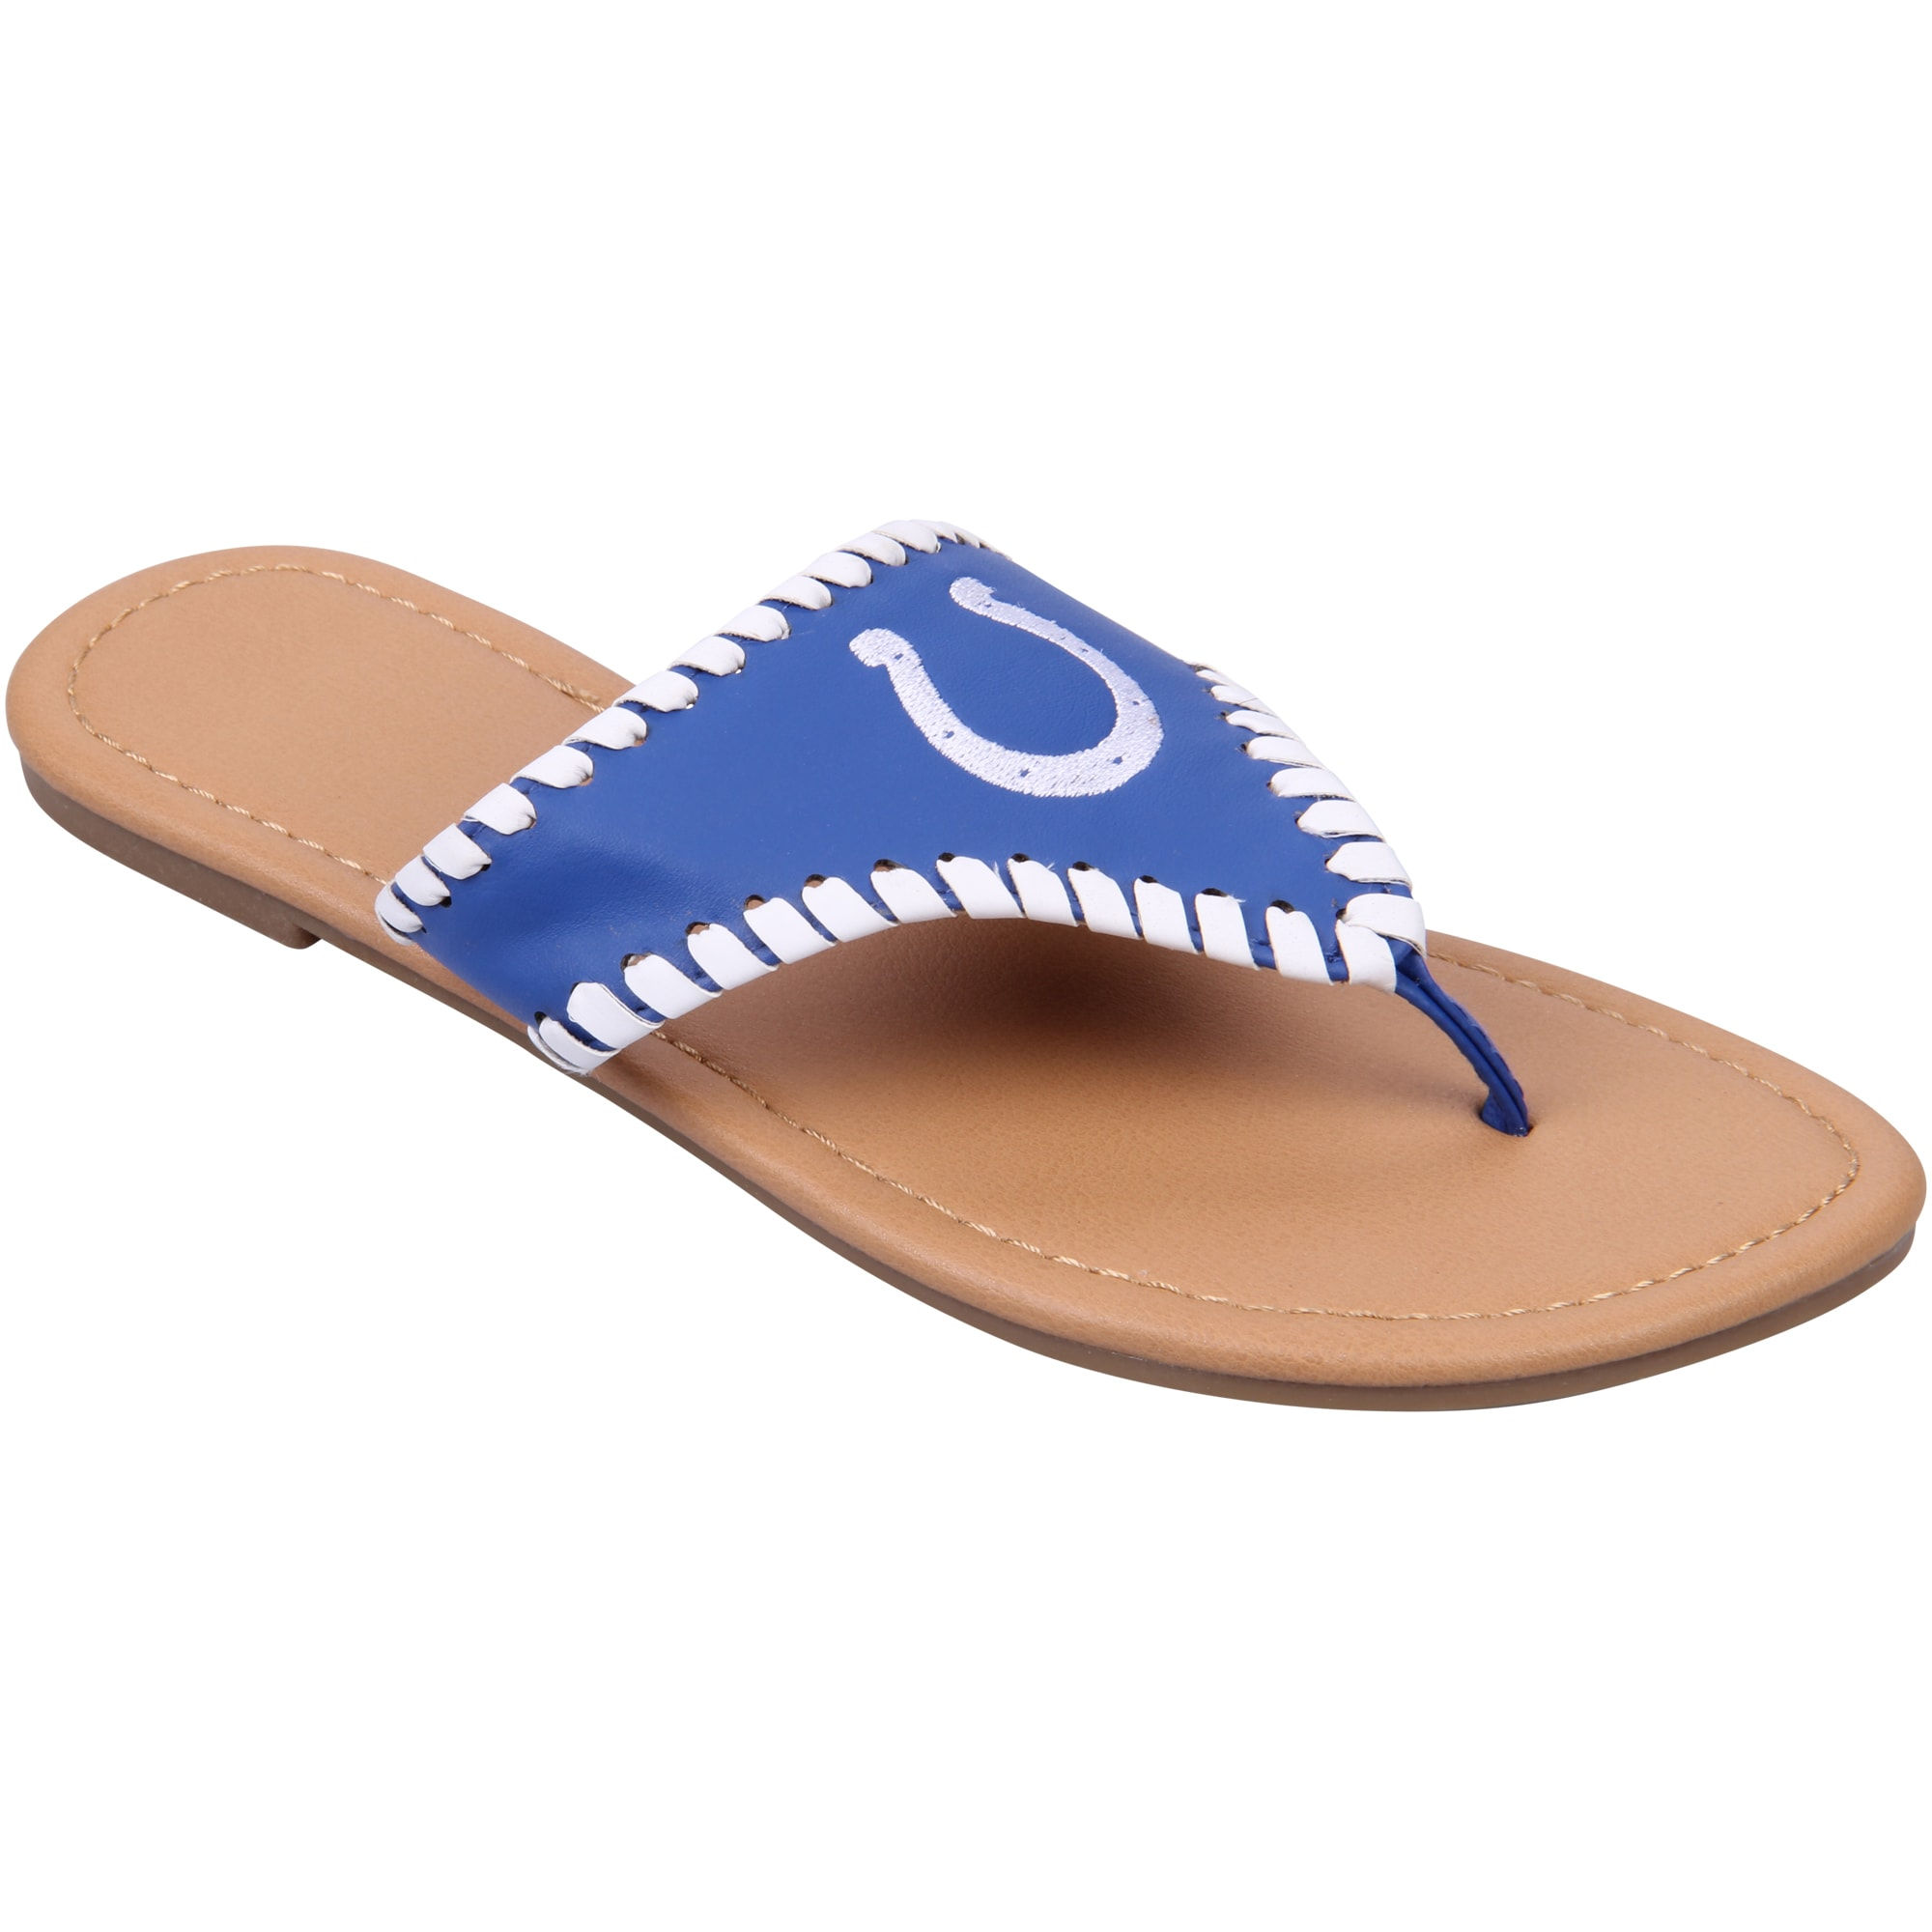 Indianapolis Colts Women's High End Sandals